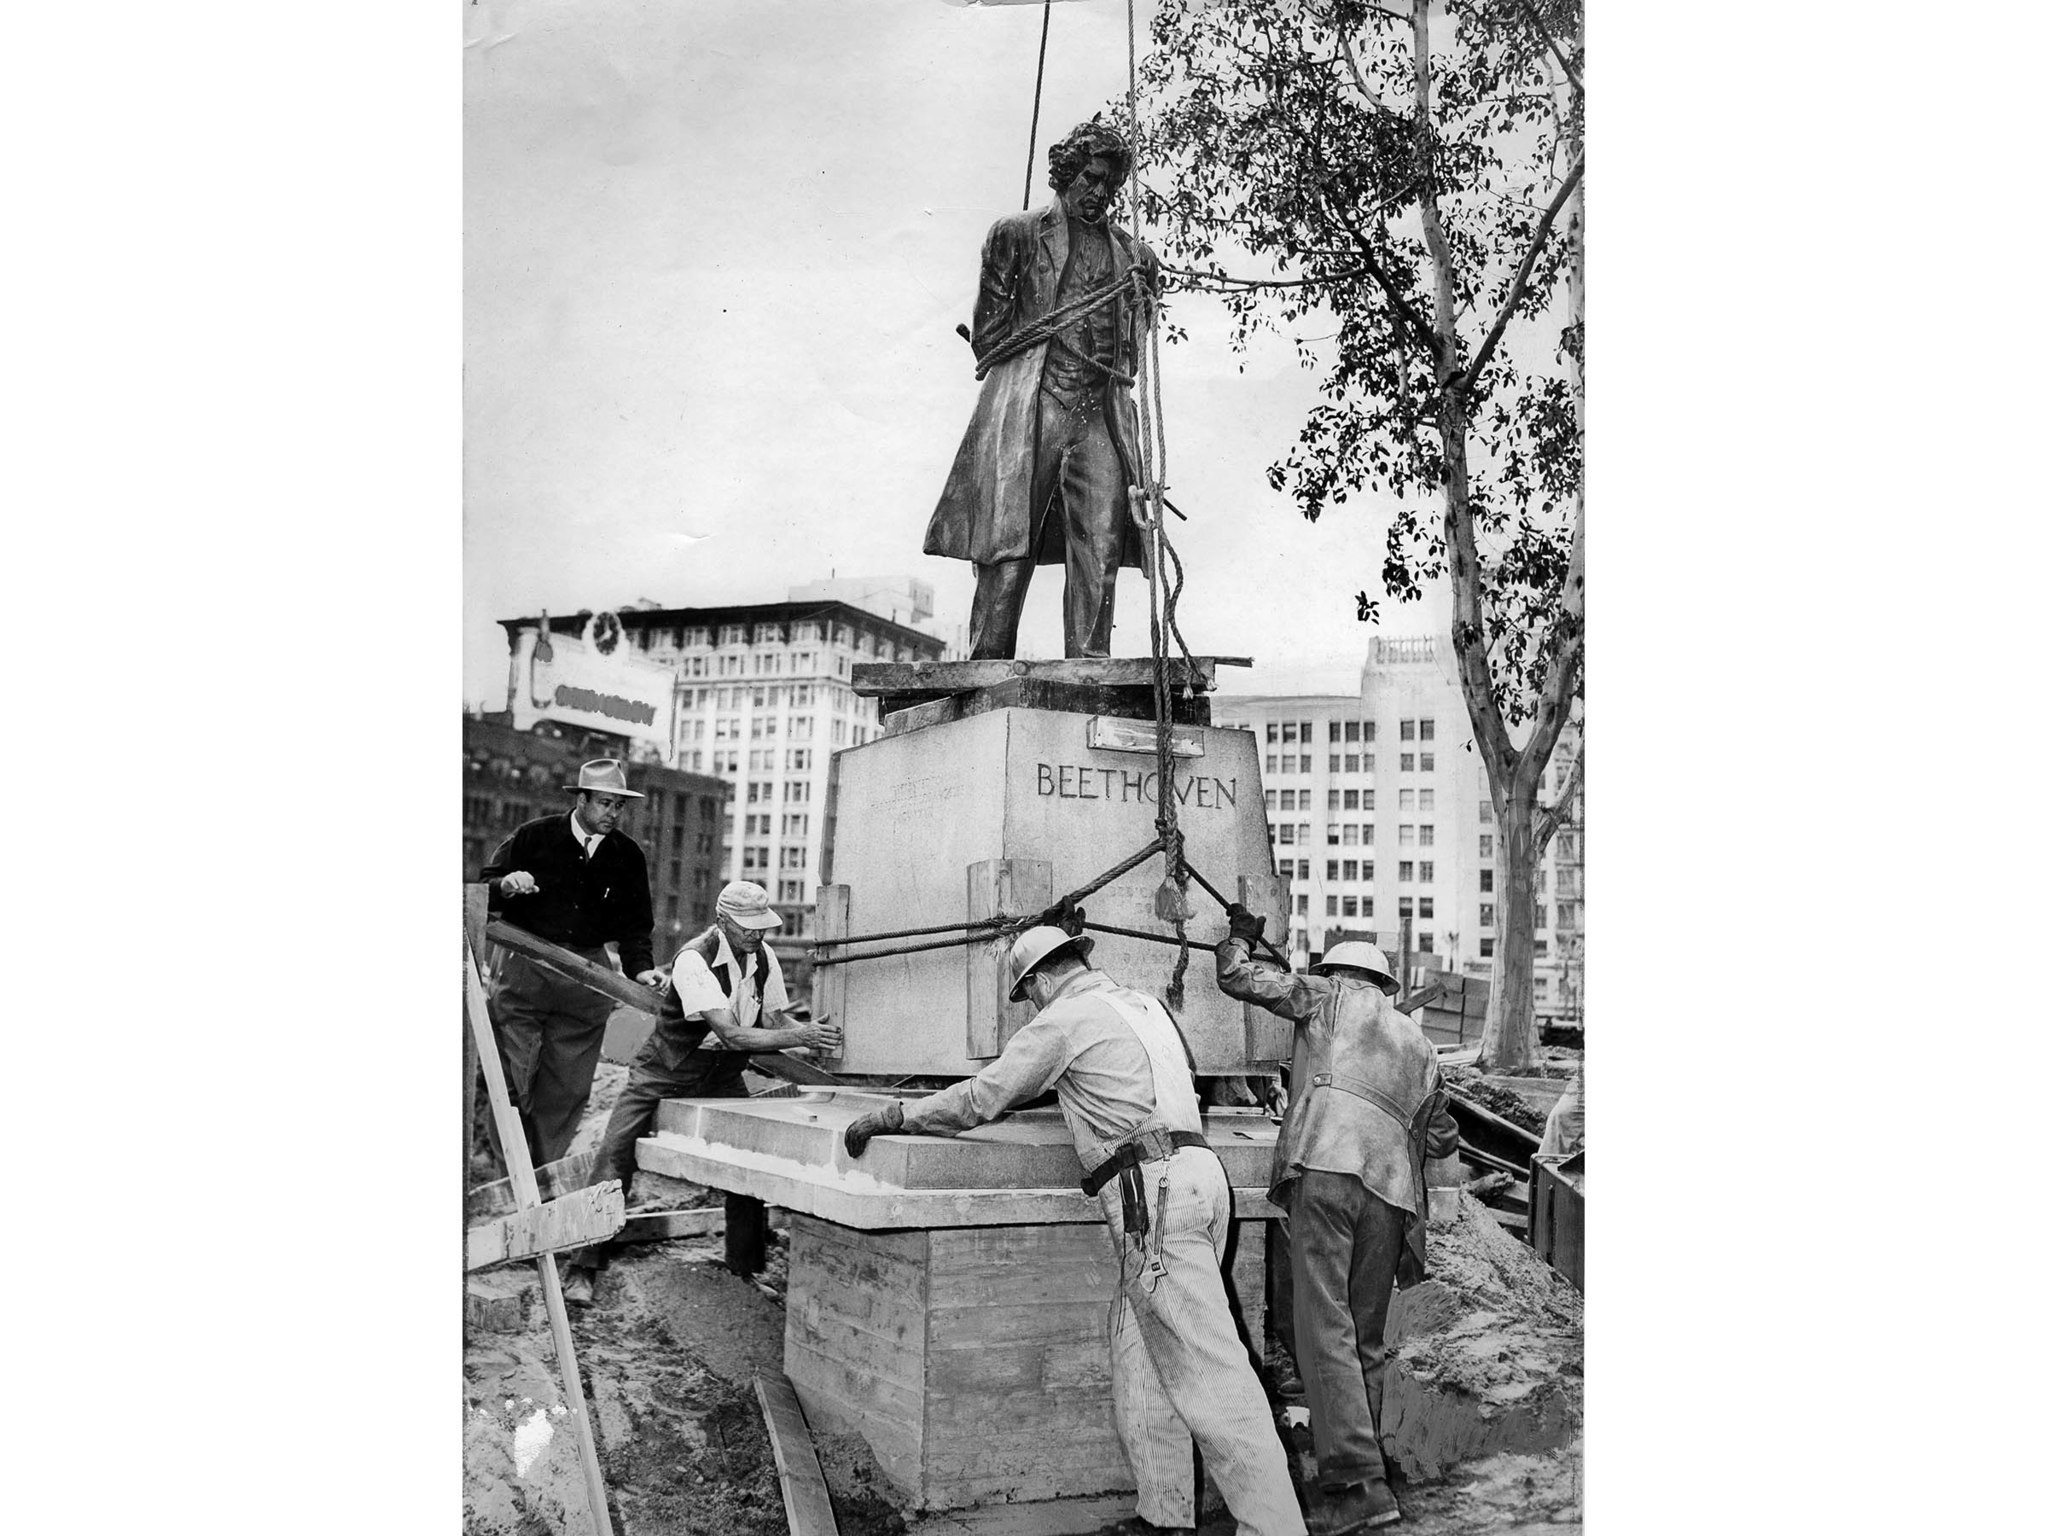 April 28, 1952: Statue of Beethoven is returned to Pershing Square after construction project at par